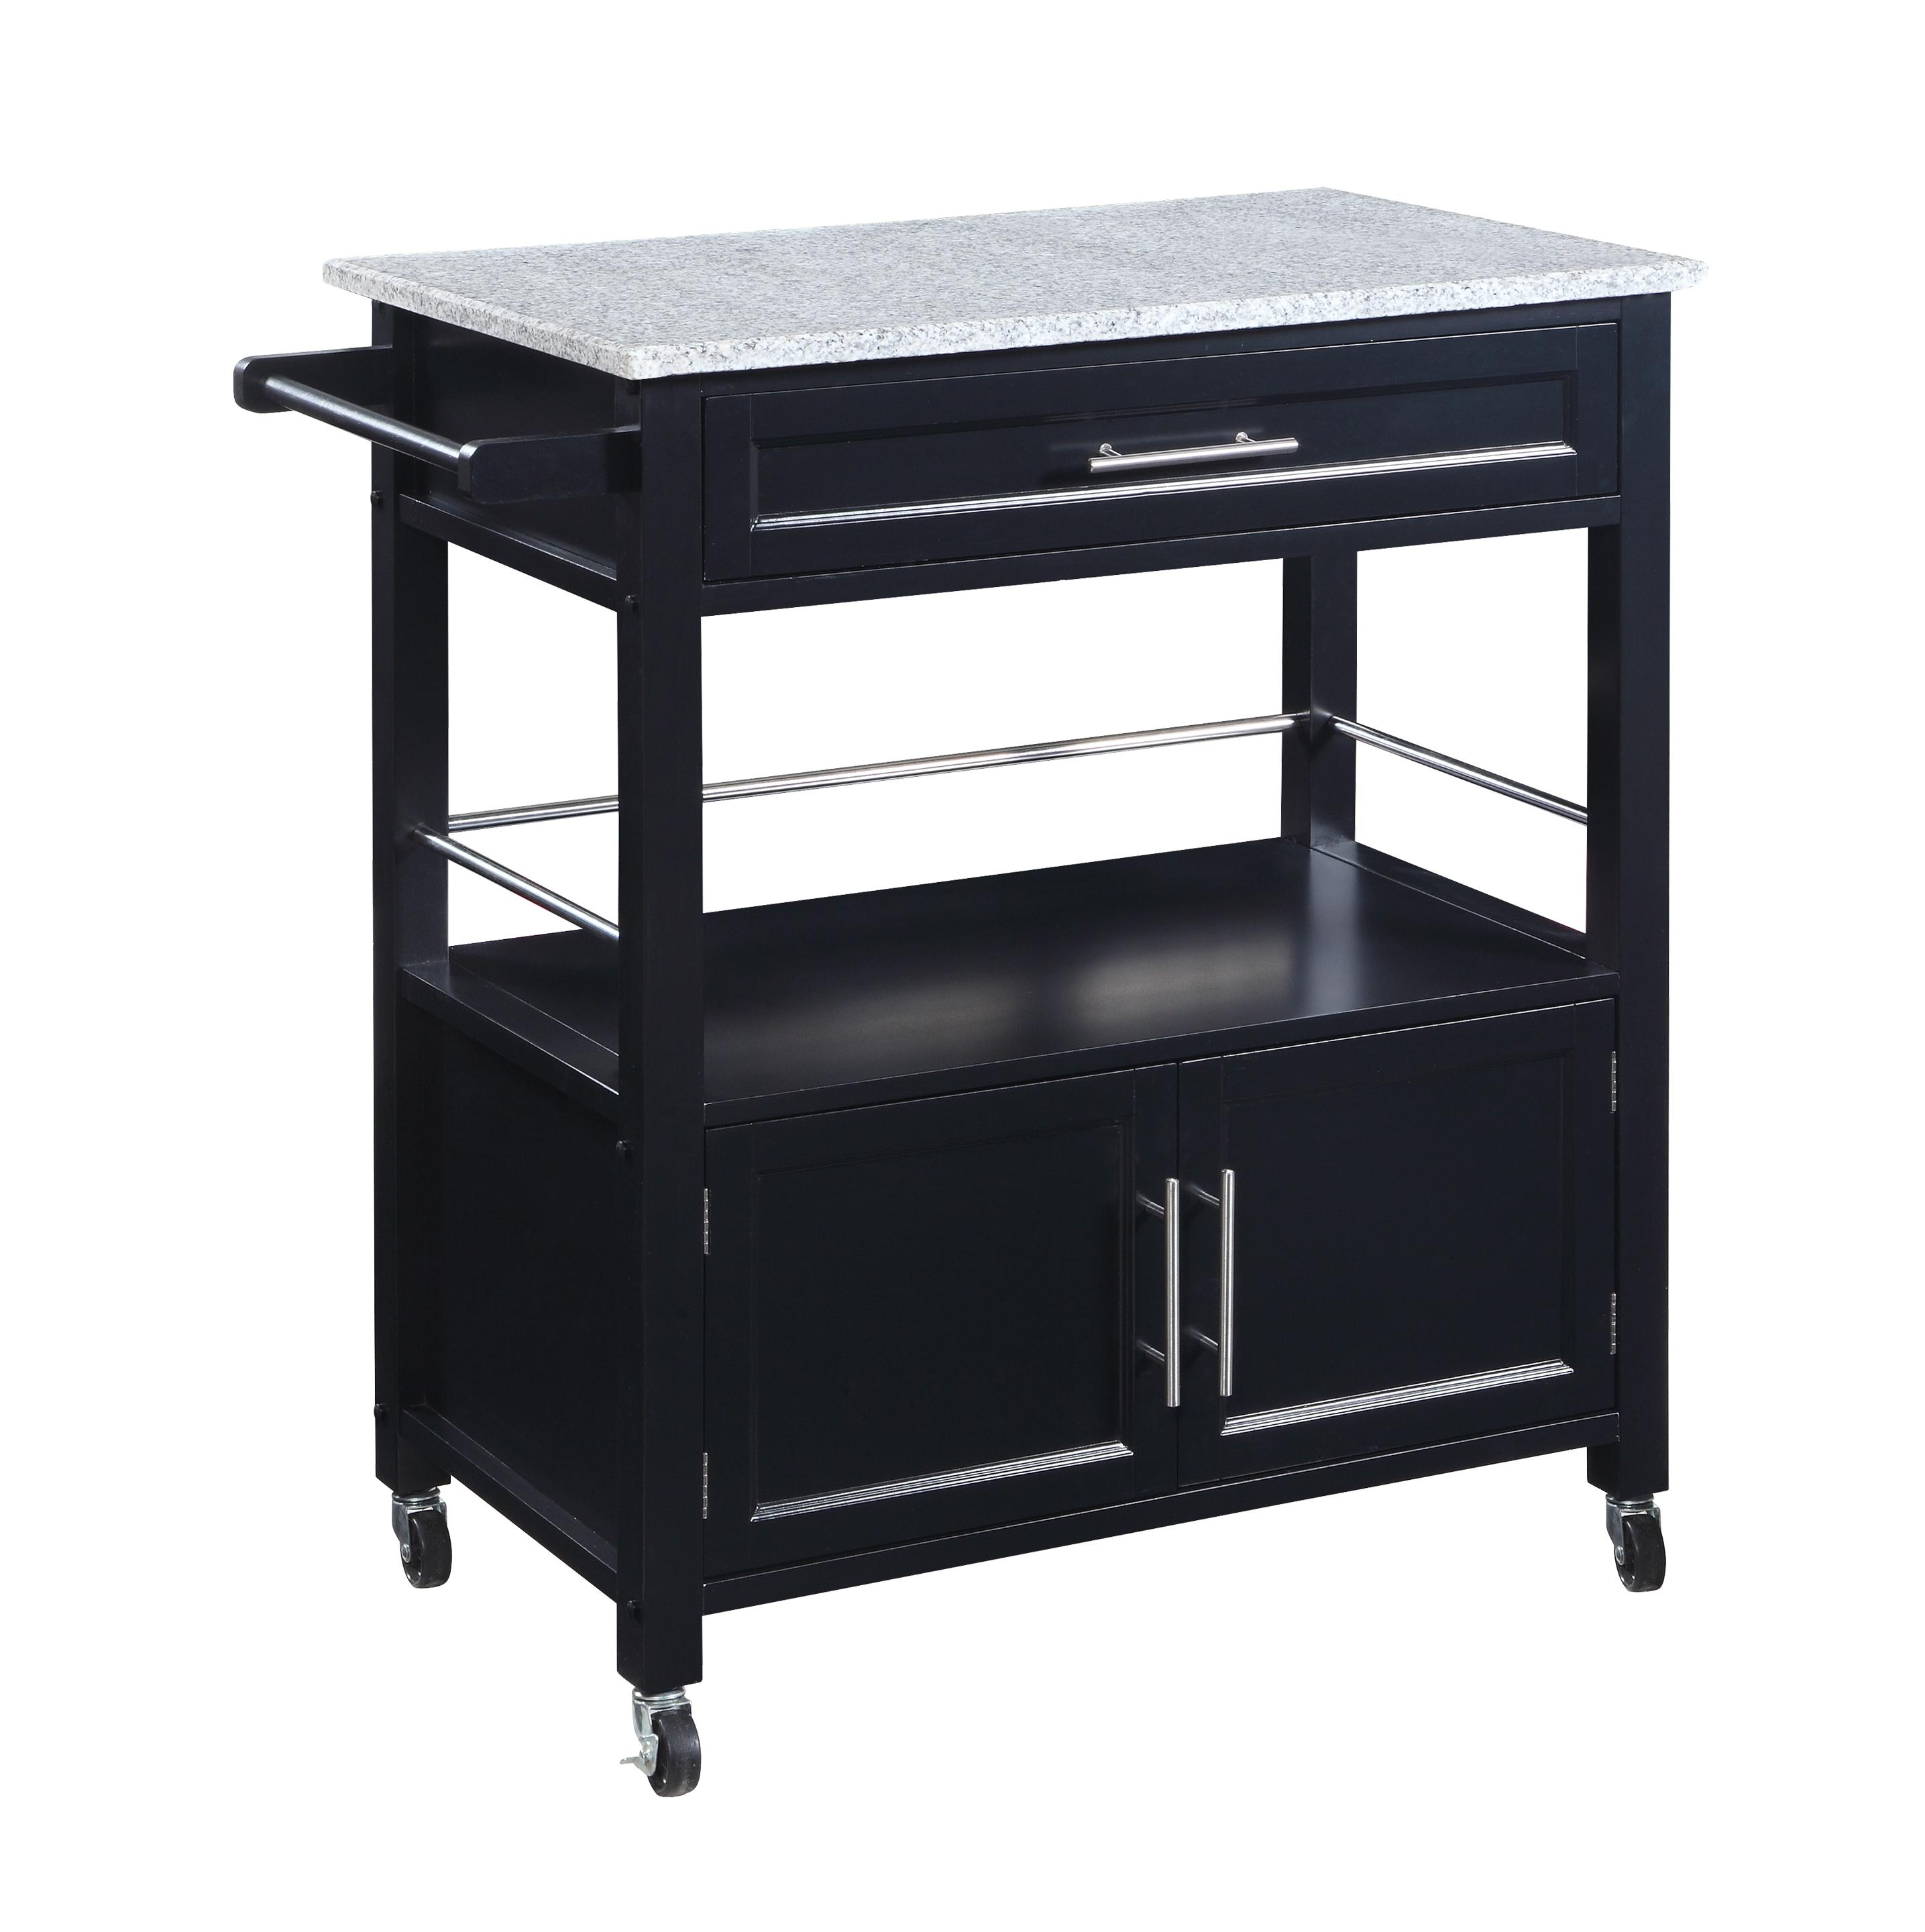 amazon com linon cameron kitchen cart with granite top kitchen rh amazon com granite top kitchen cart target francesca granite top kitchen cart